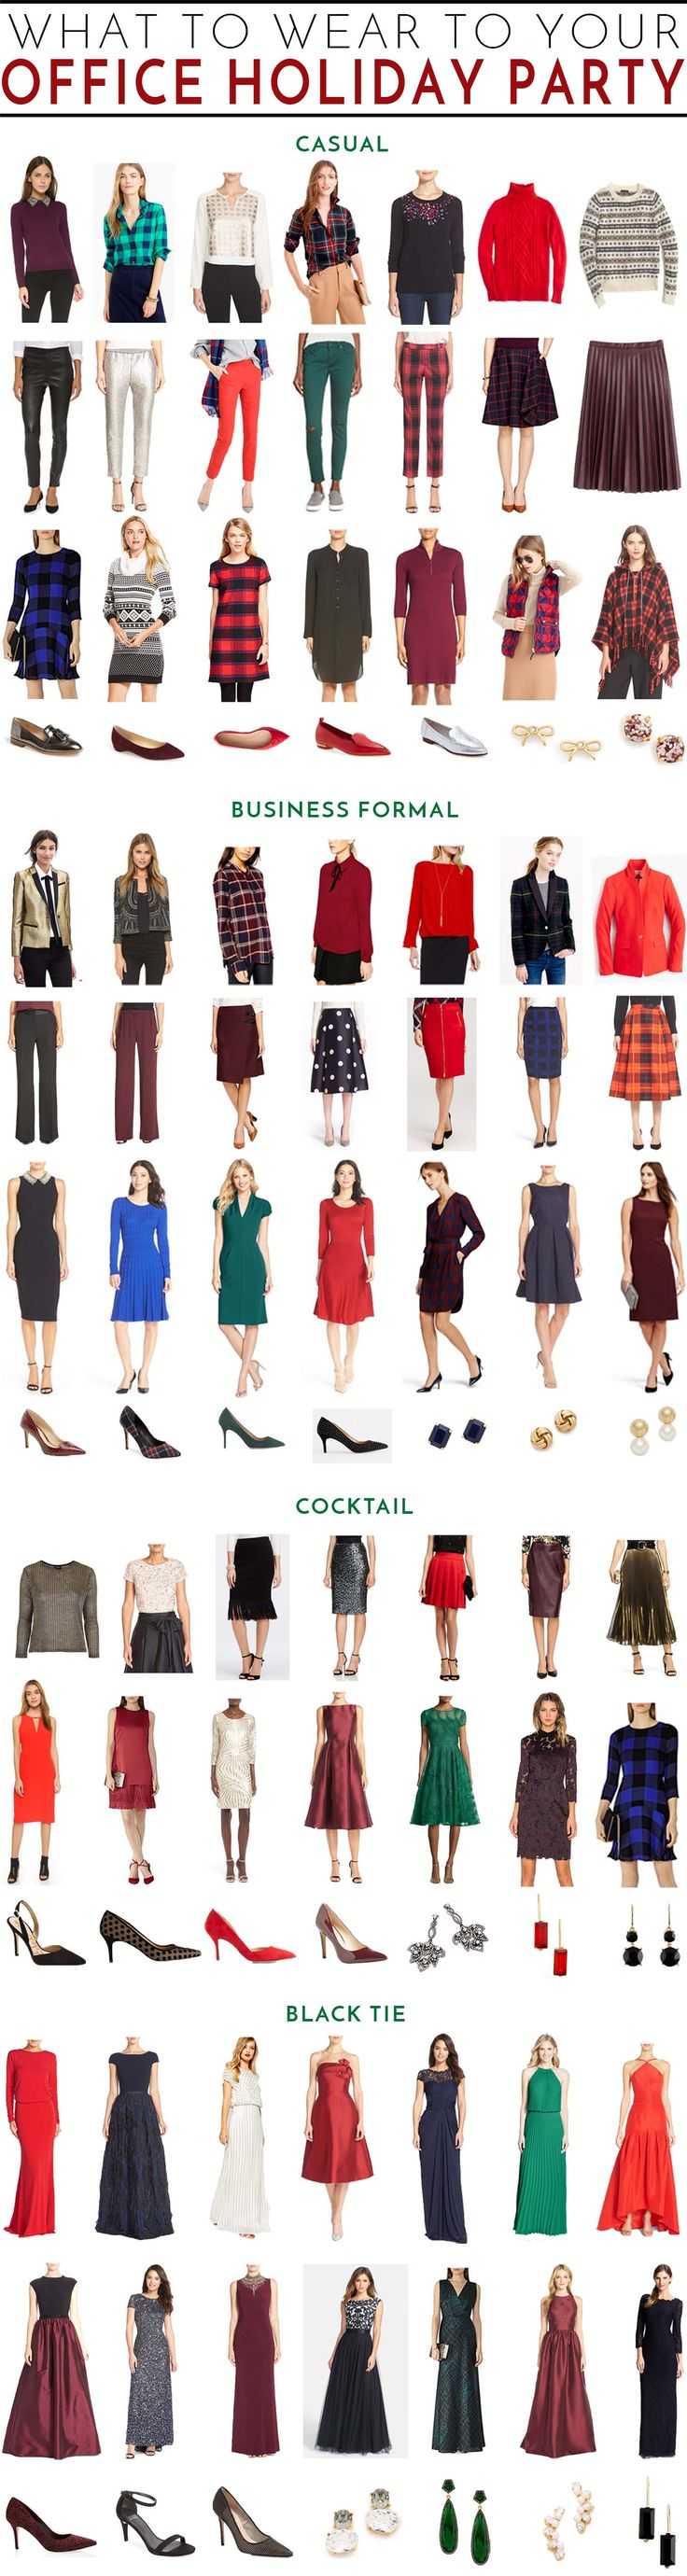 What to Wear to Your Work Holiday Party | the complete guide to festive office attire for casual, business formal, cocktail or black tie business events